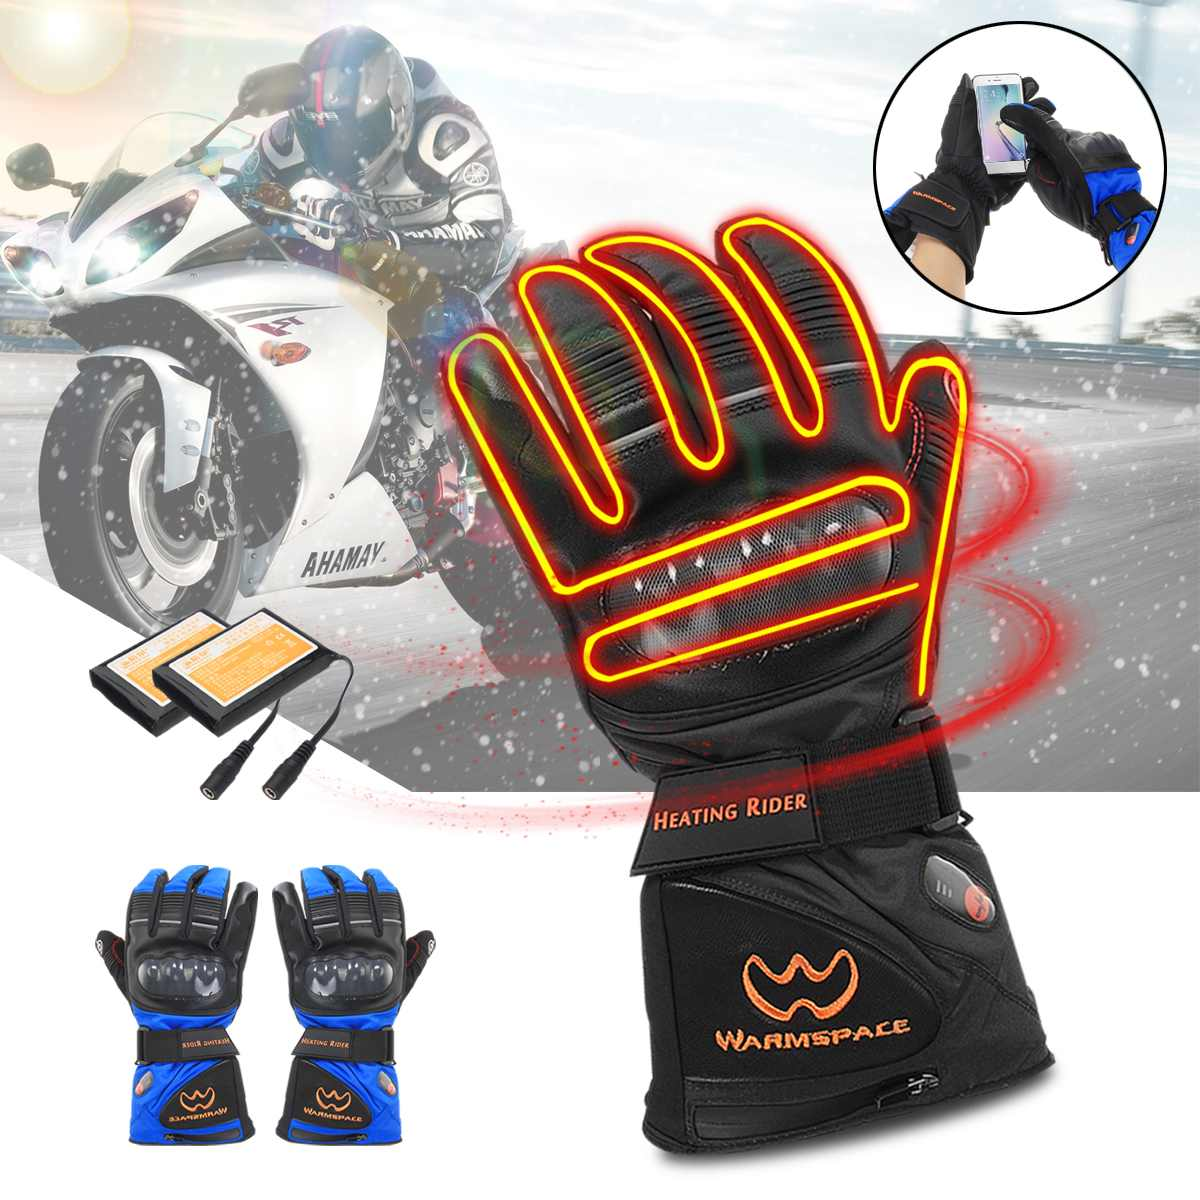 5600mah Rechargeable Electric Gloves Heated Li Battery For Motorcycle Riding Snowboarding Skiing